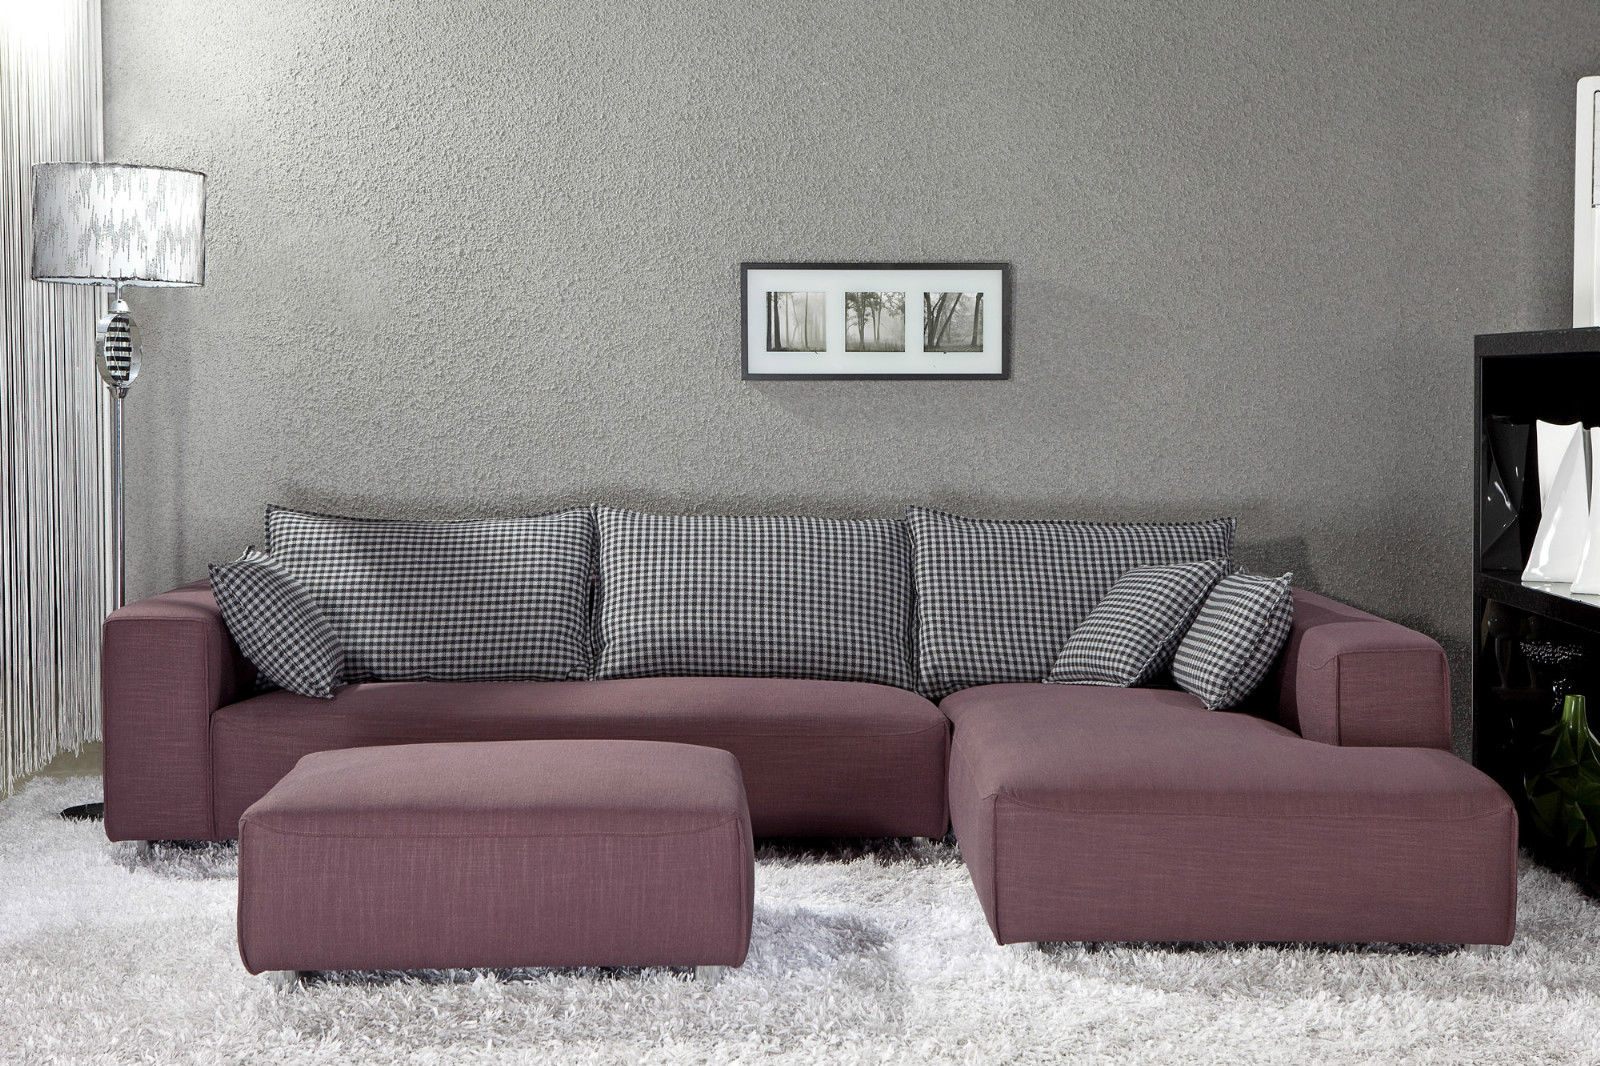 white fluffy sofa cushions set below 3000 in hyderabad sectional for small spaces homesfeed